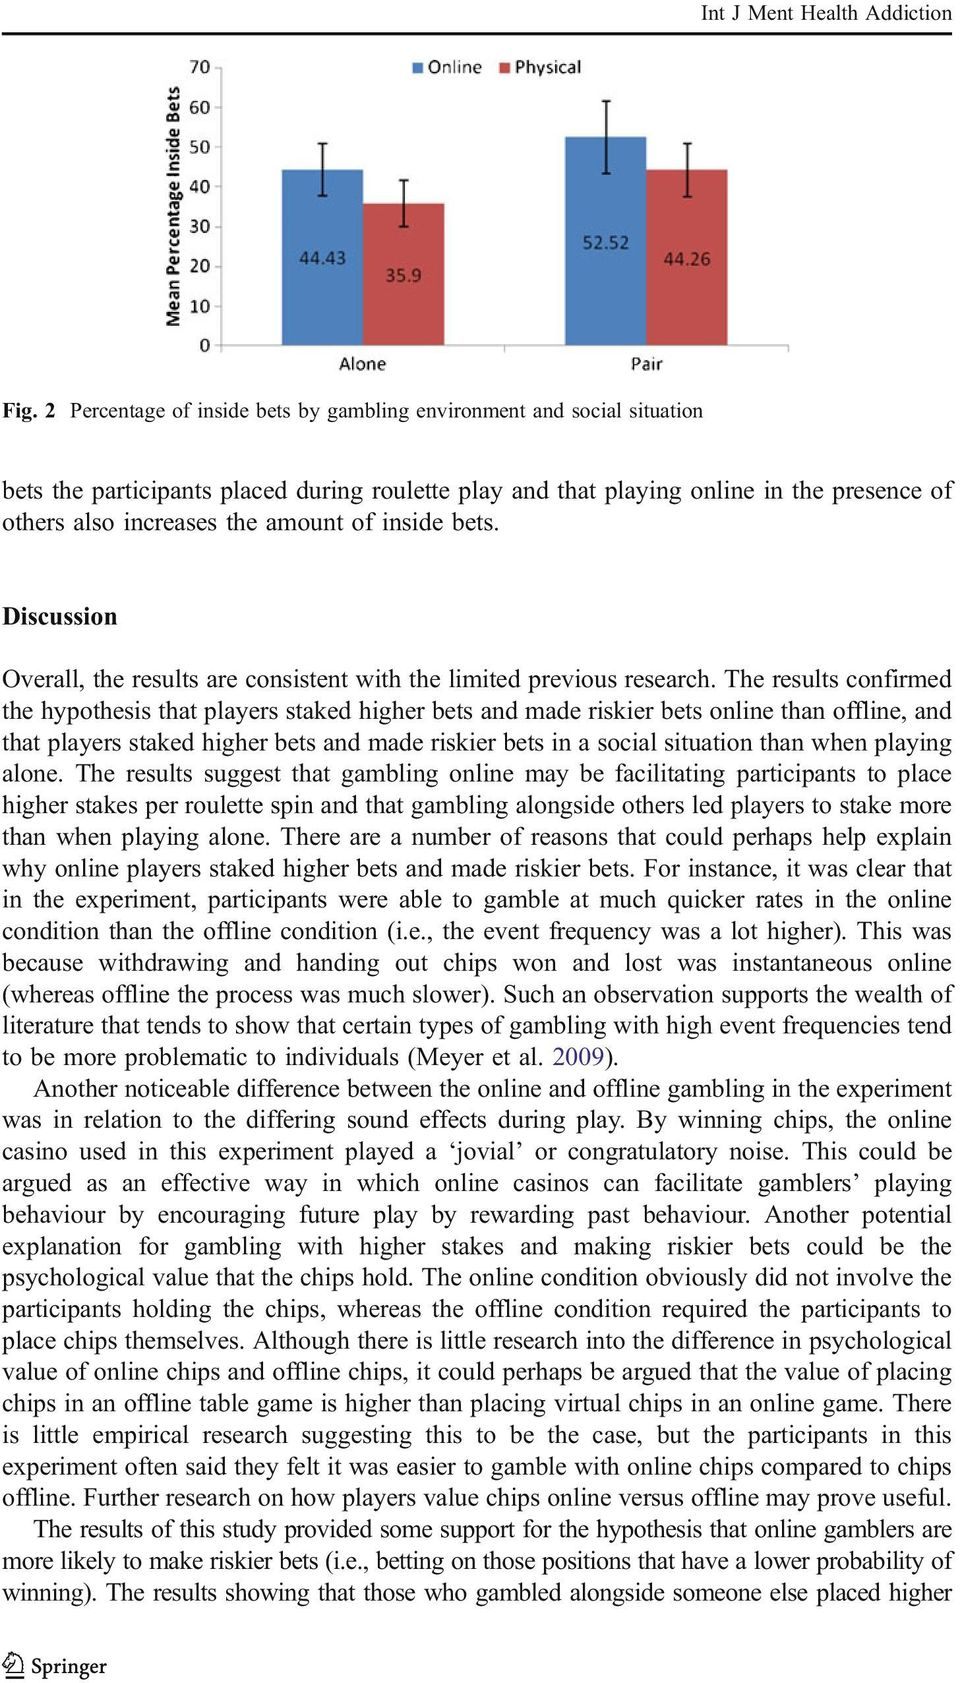 The results confirmed the hypothesis that players staked higher bets and made riskier bets online than offline, and that players staked higher bets and made riskier bets in a social situation than